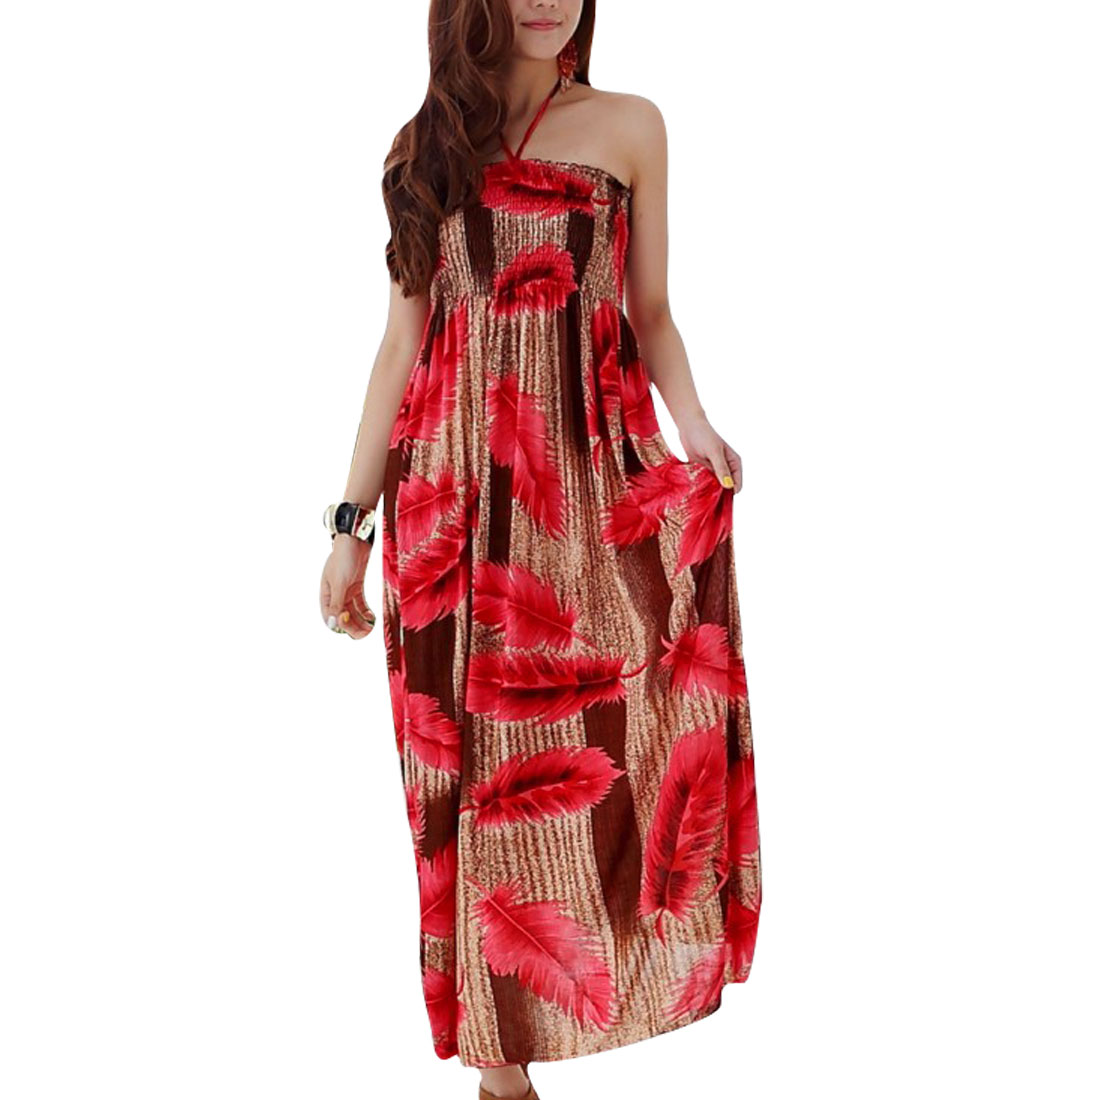 Lady Straped Halter Neck Feathers Pattern Ankle Length Dress Red Beige XS